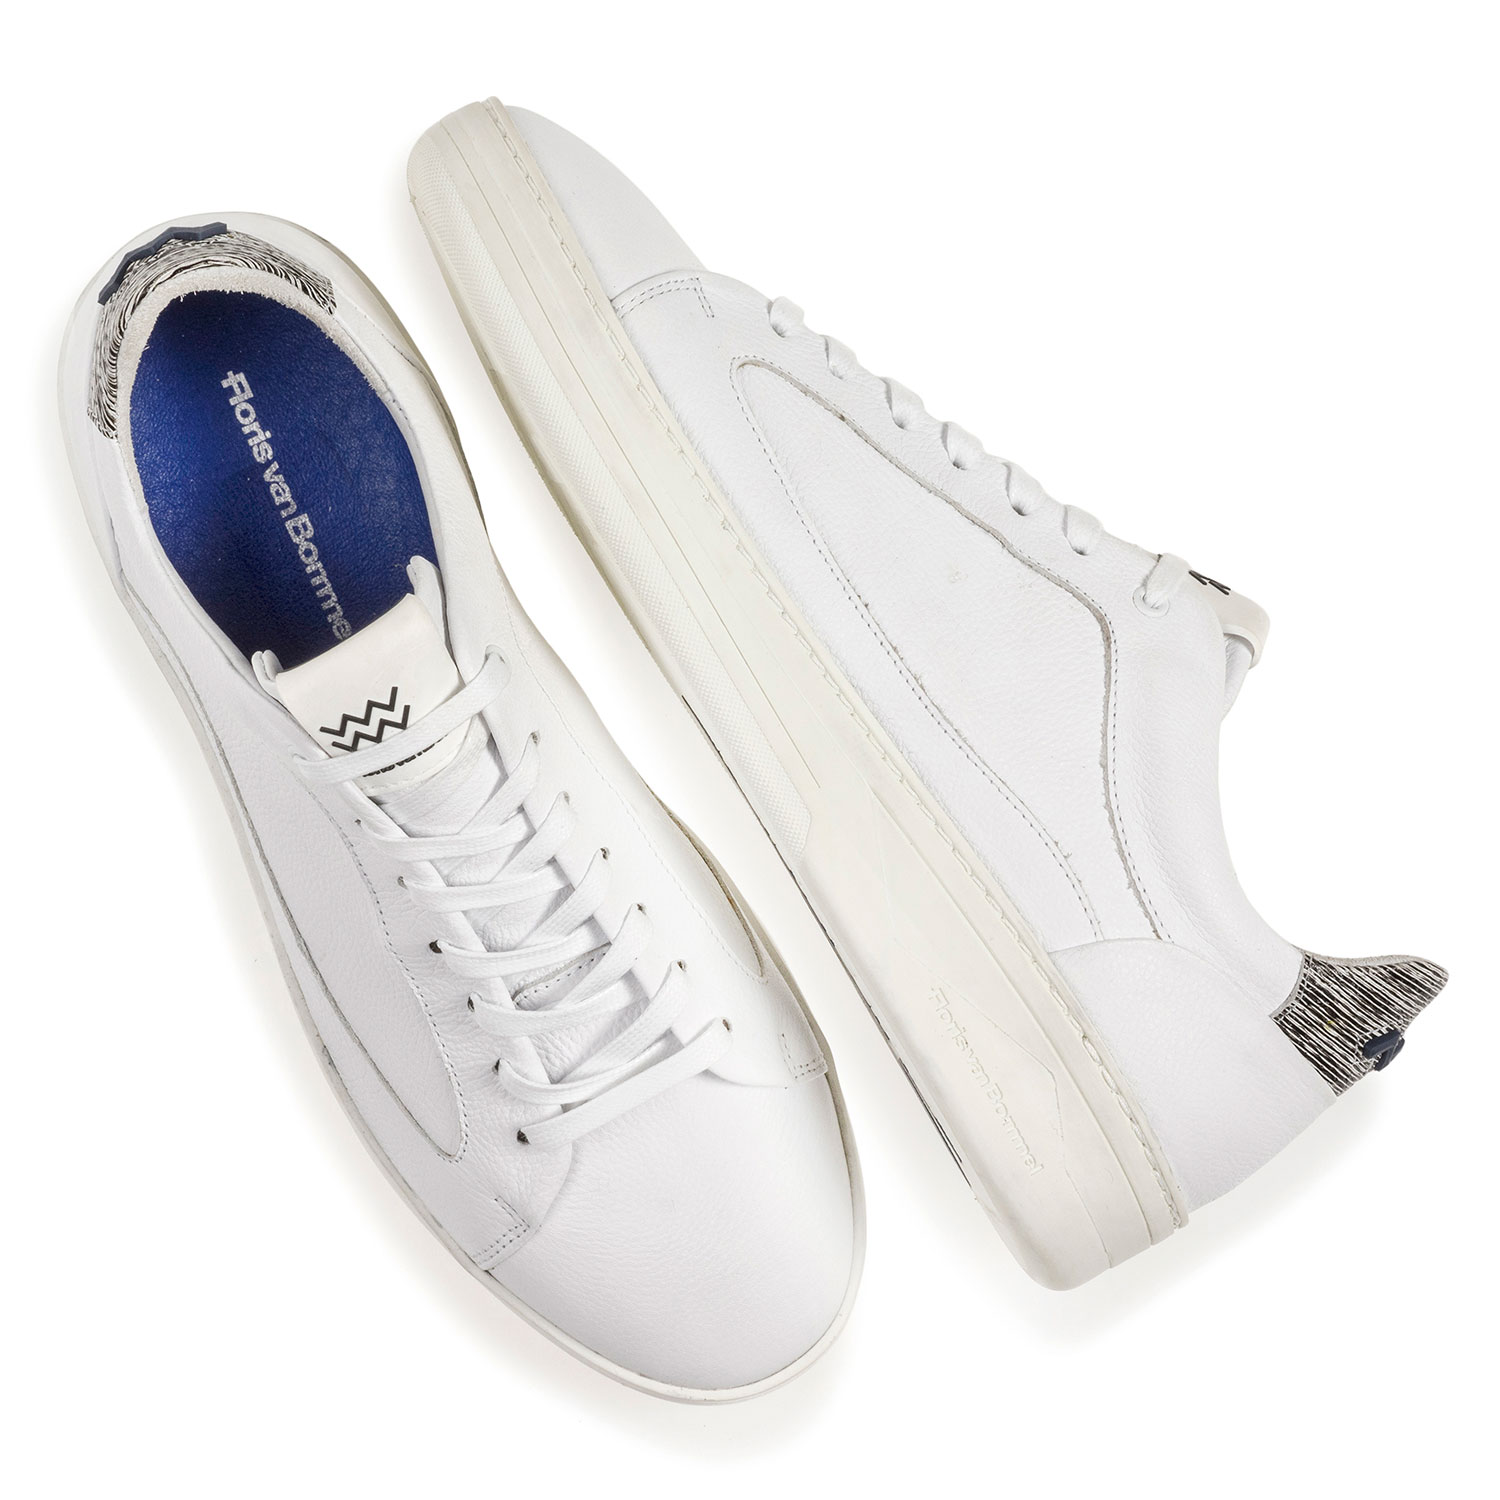 13265/00 - White calf leather sneaker